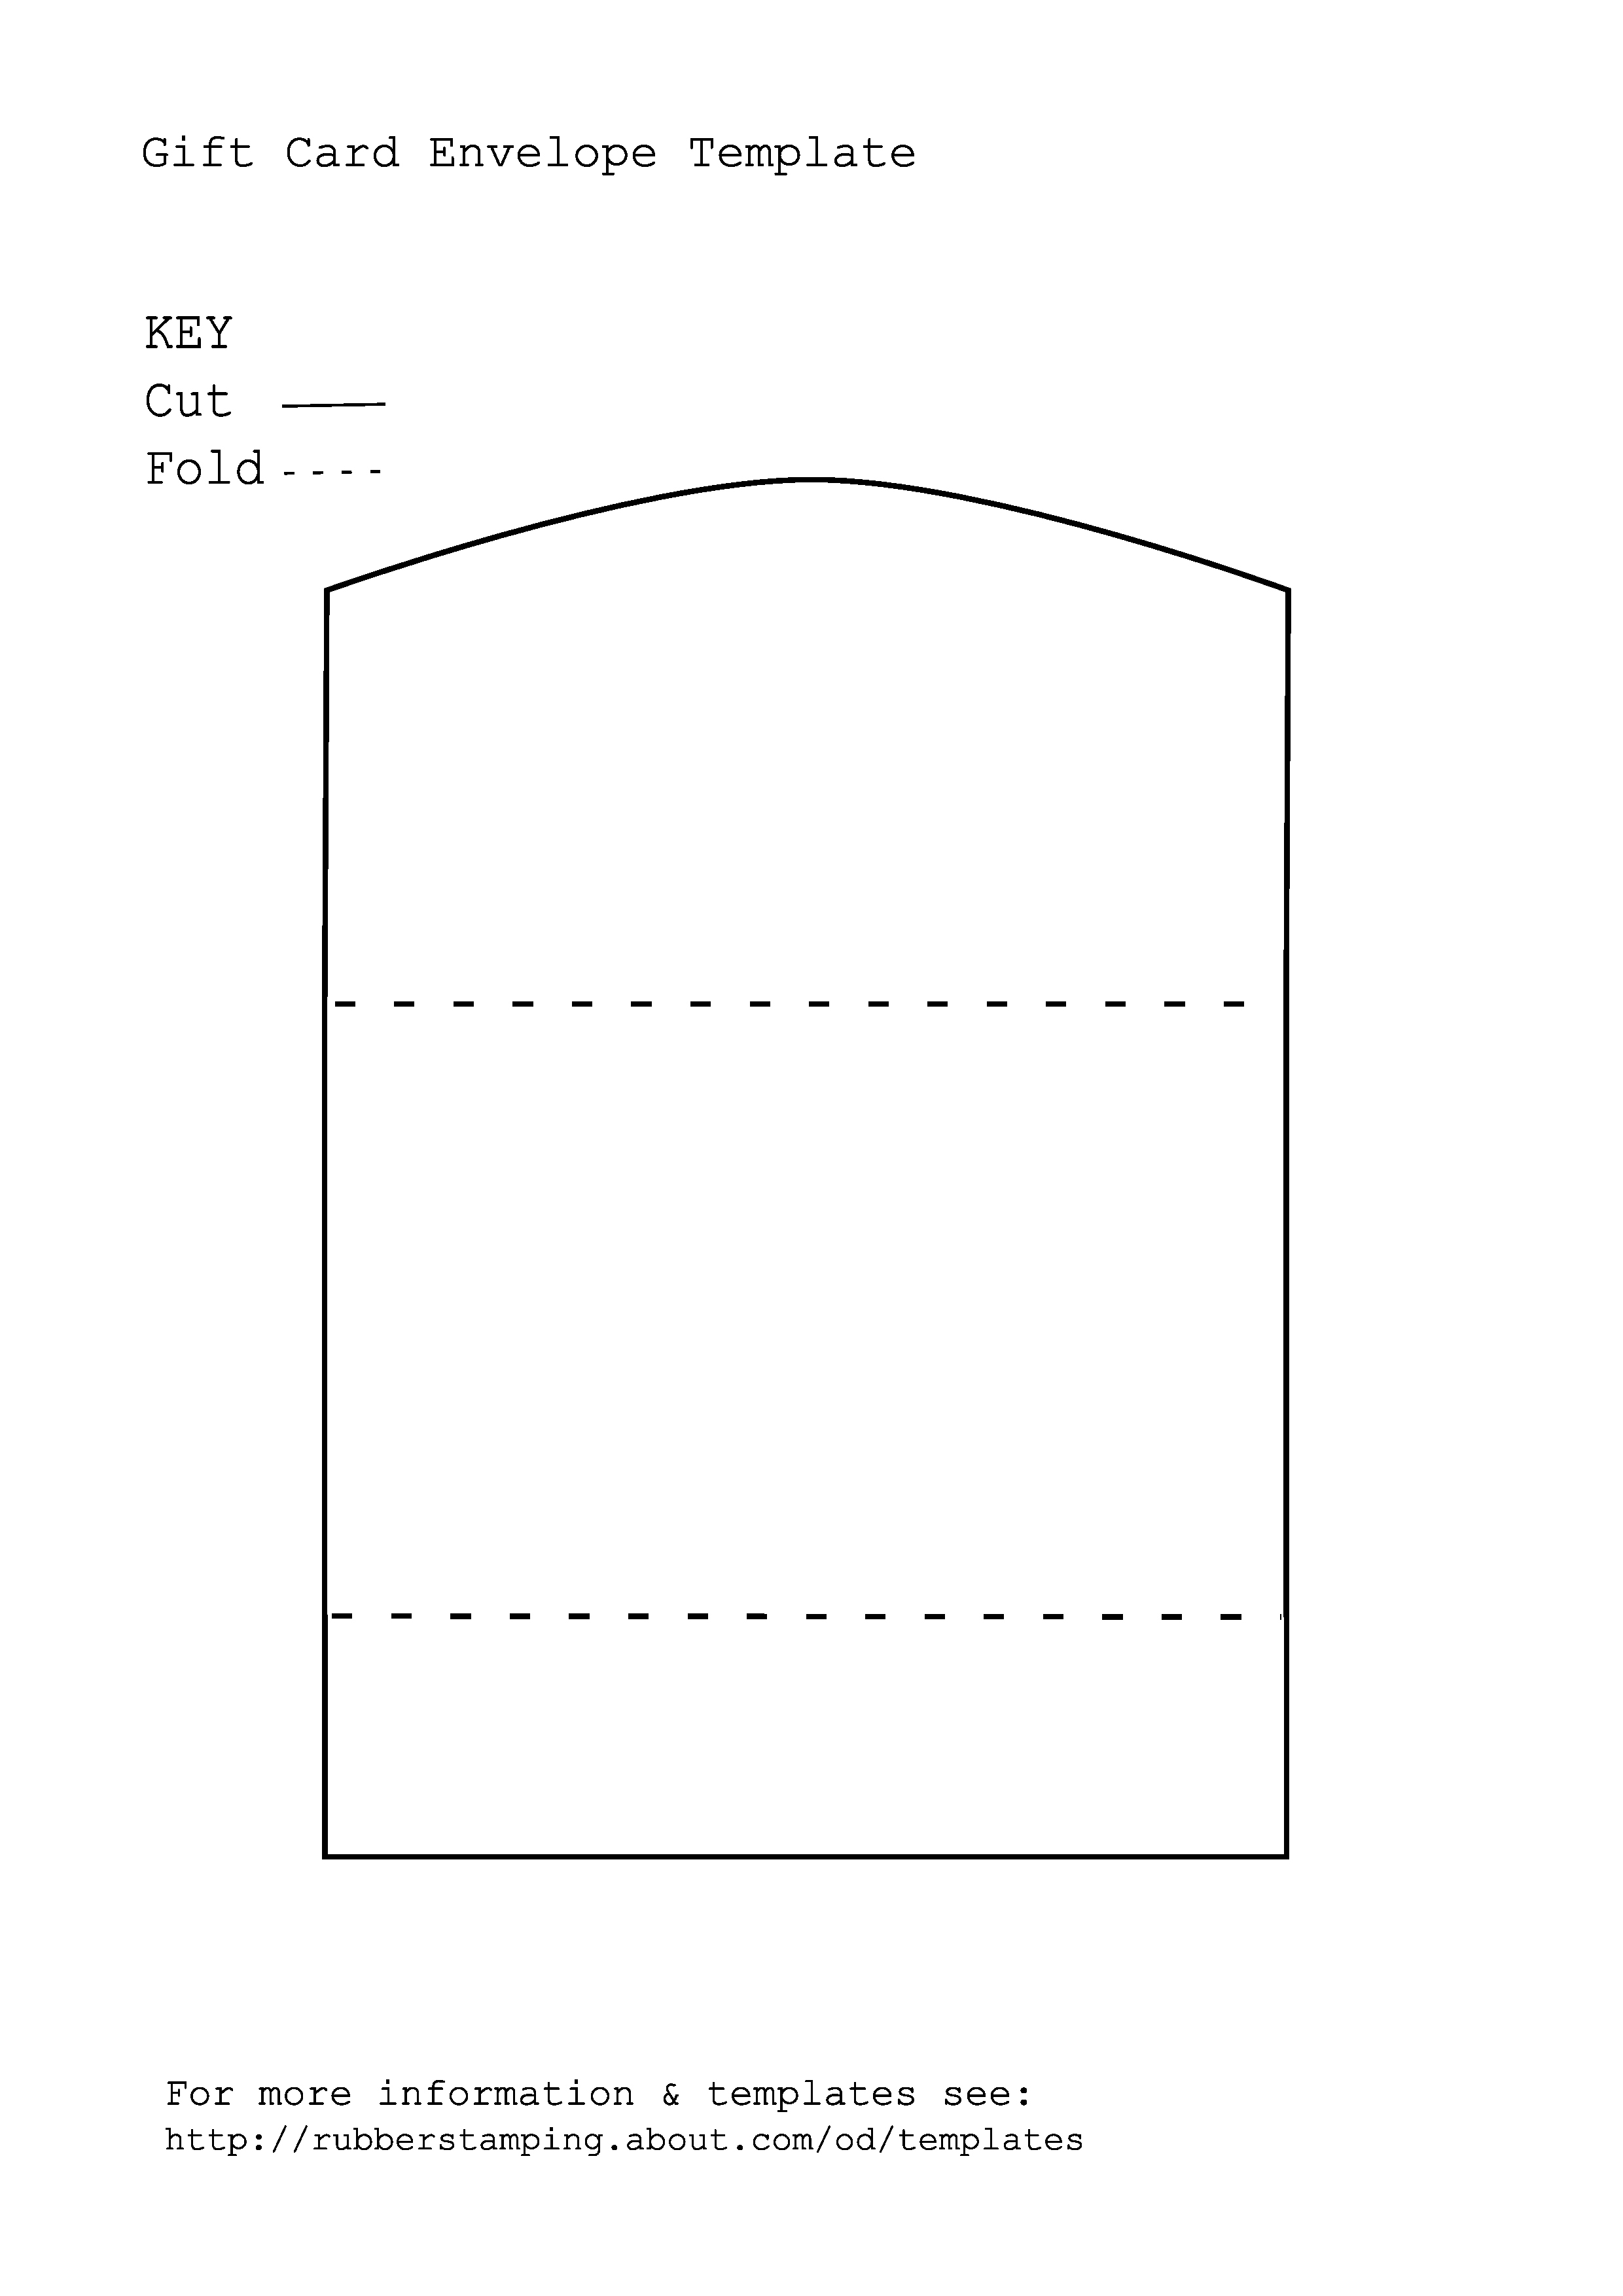 Gift Card Envelope Template New Learn How to Make some Super Easy Envelopes Gift Card Money Holders